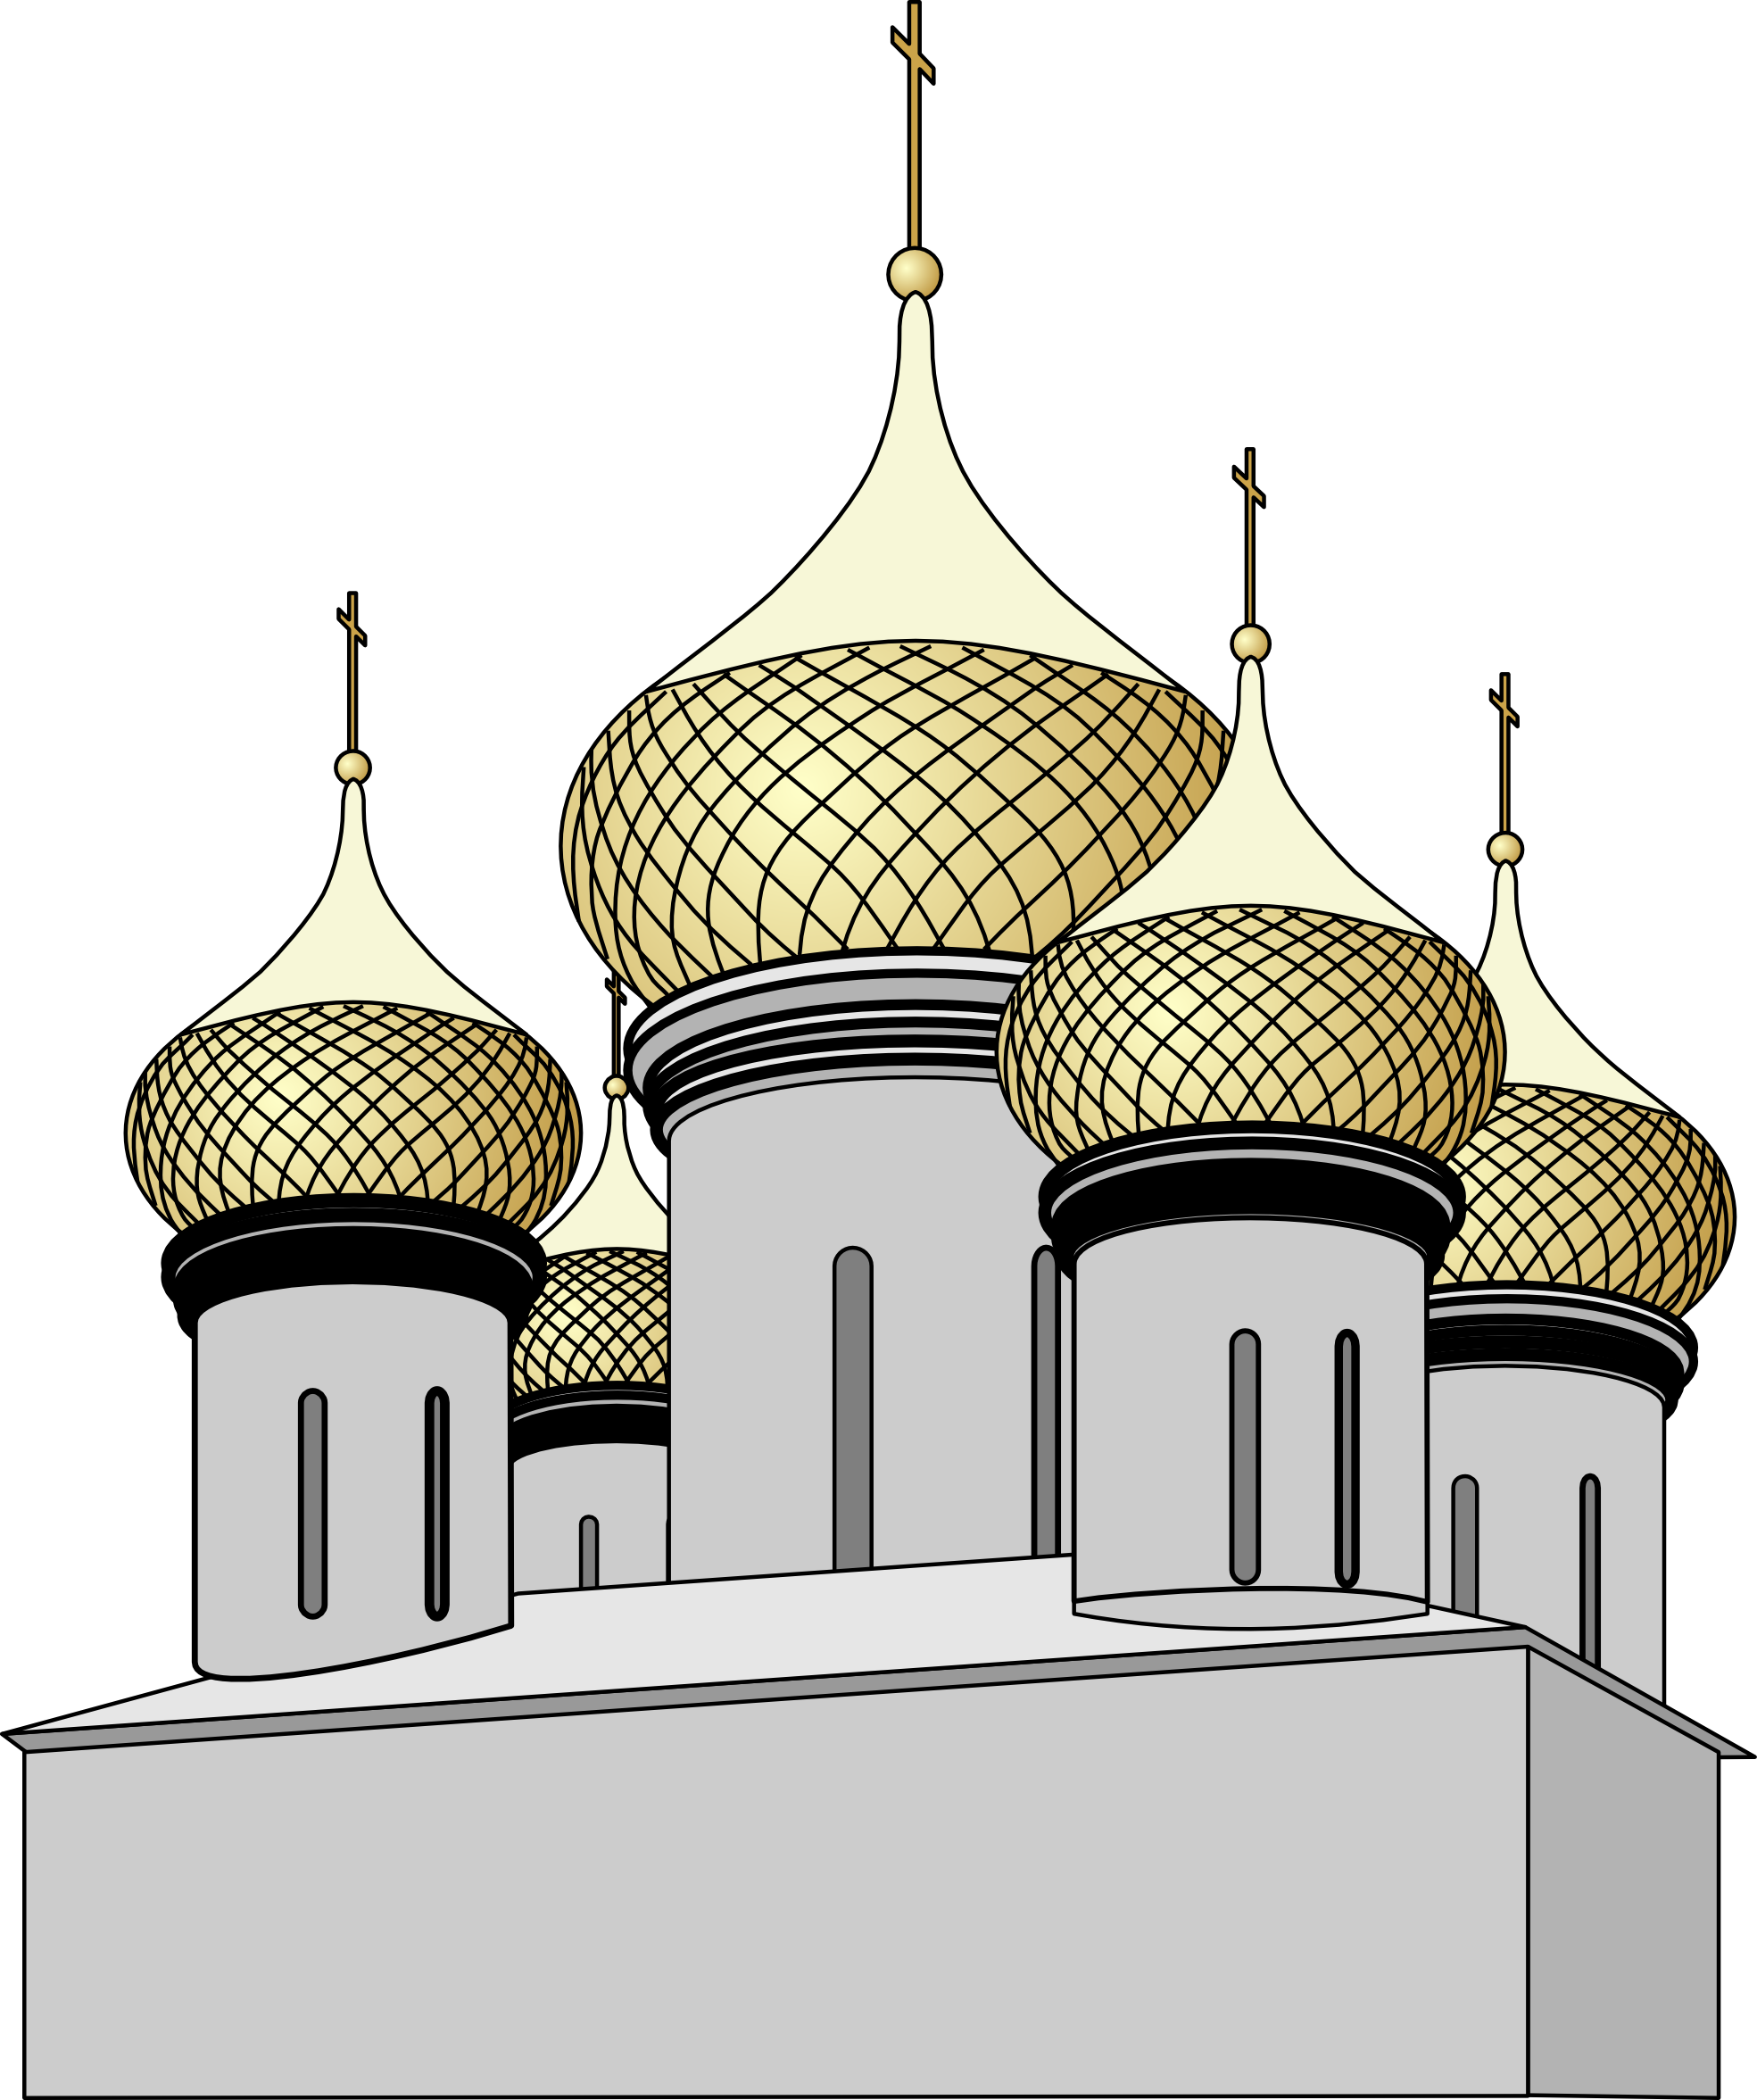 Church clipart transparent background. Mosque png pictures free